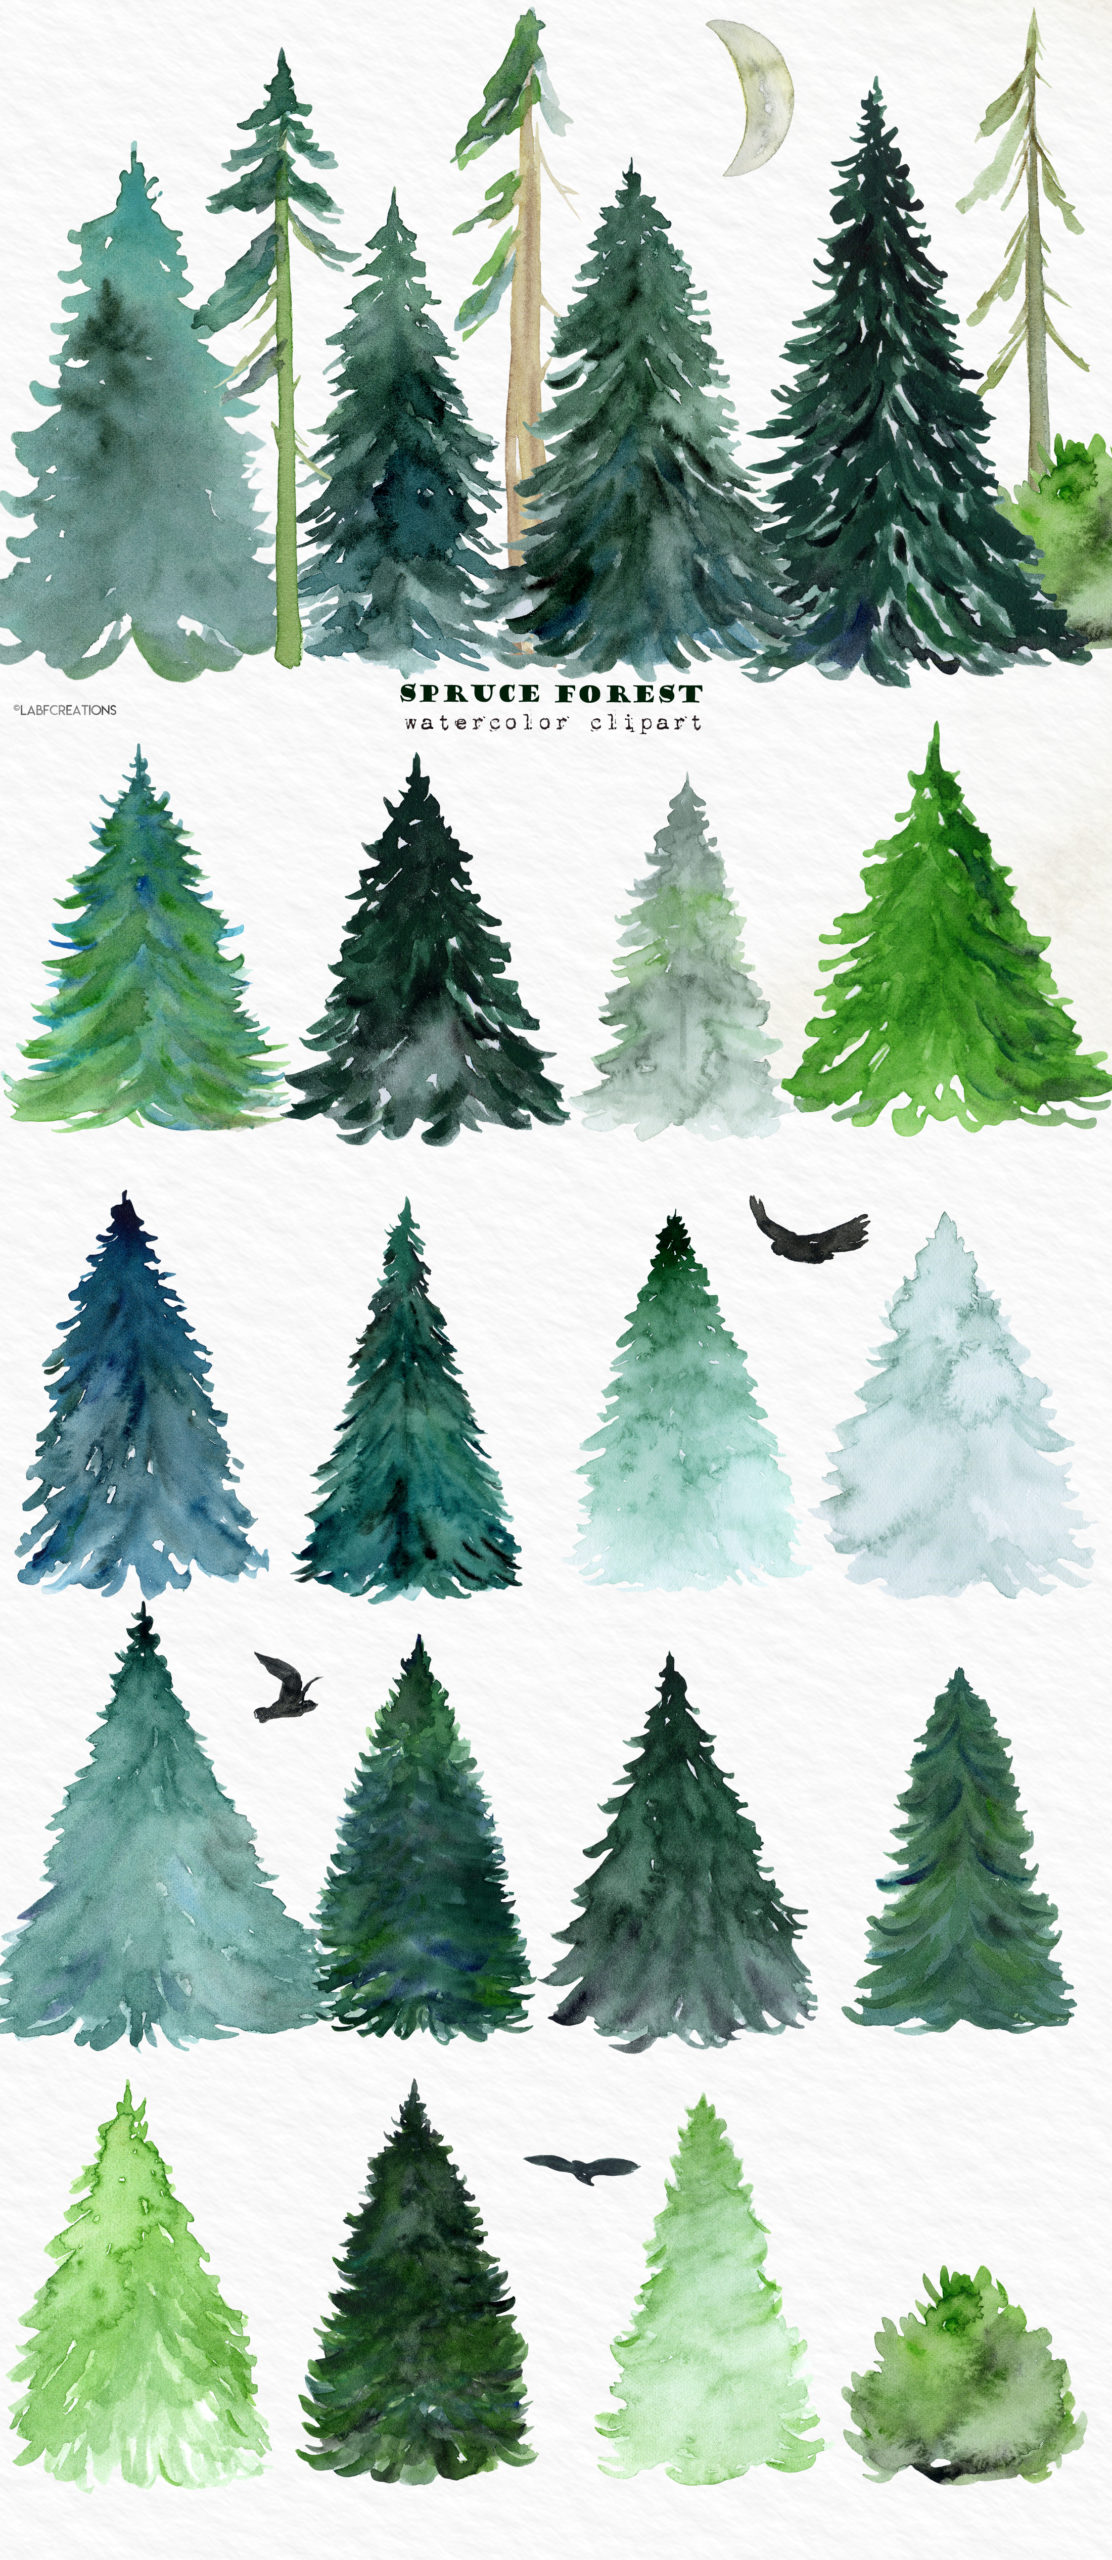 mountains spruces forest pine trees watercolor clipart fir trees png christmas crella mountains spruces forest pine trees watercolor clipart fir trees png christmas